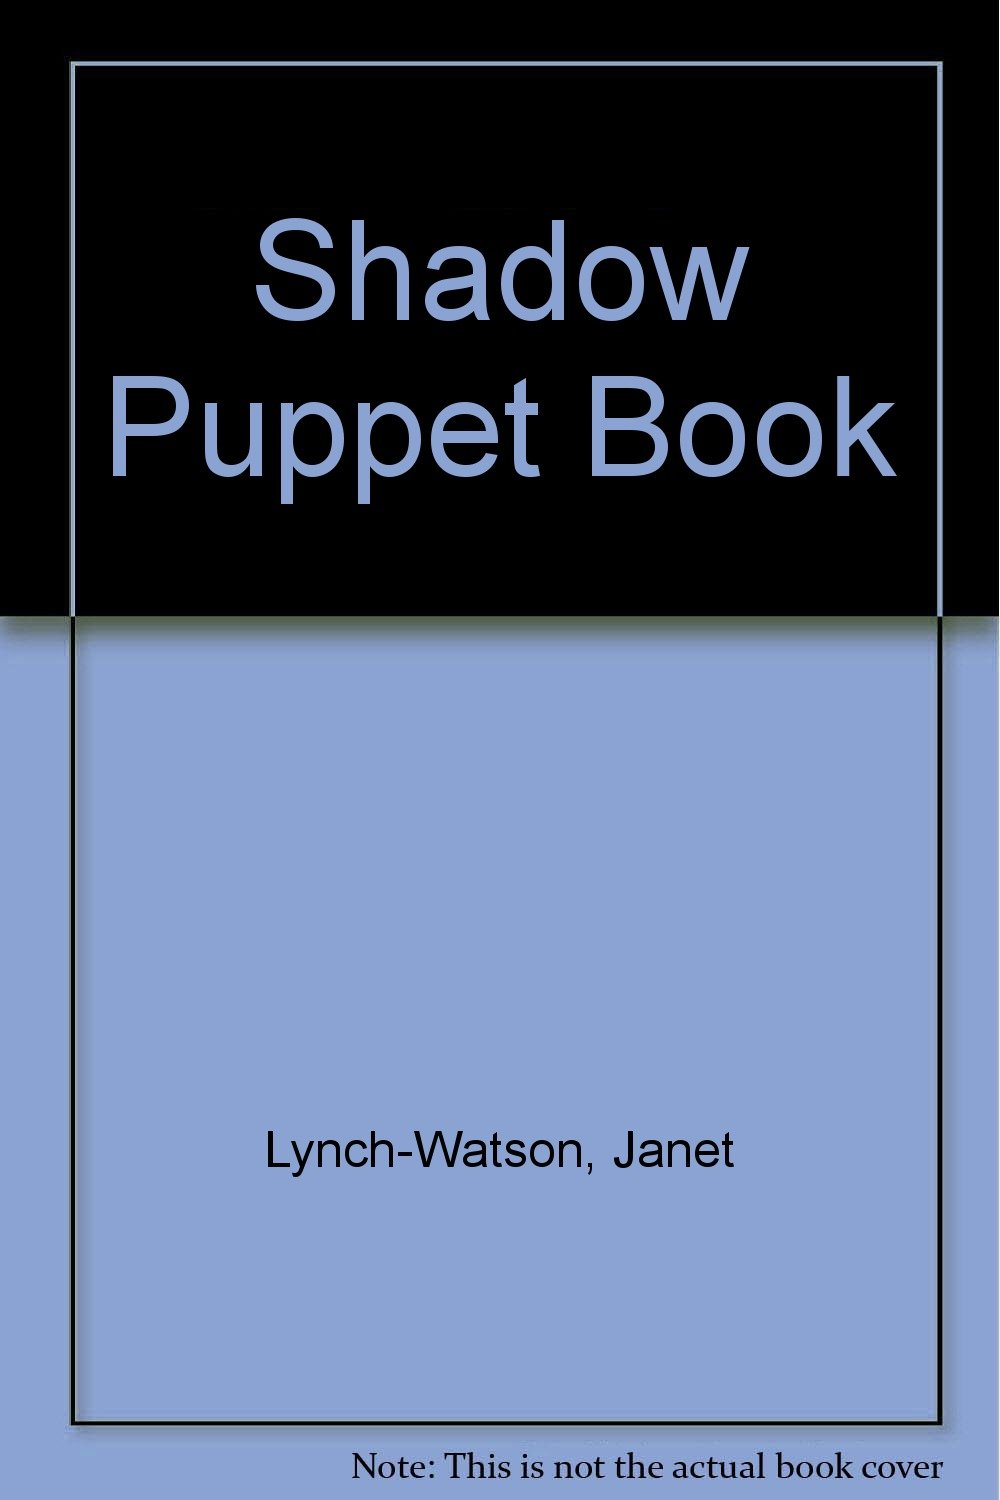 The Shadow Puppet Book